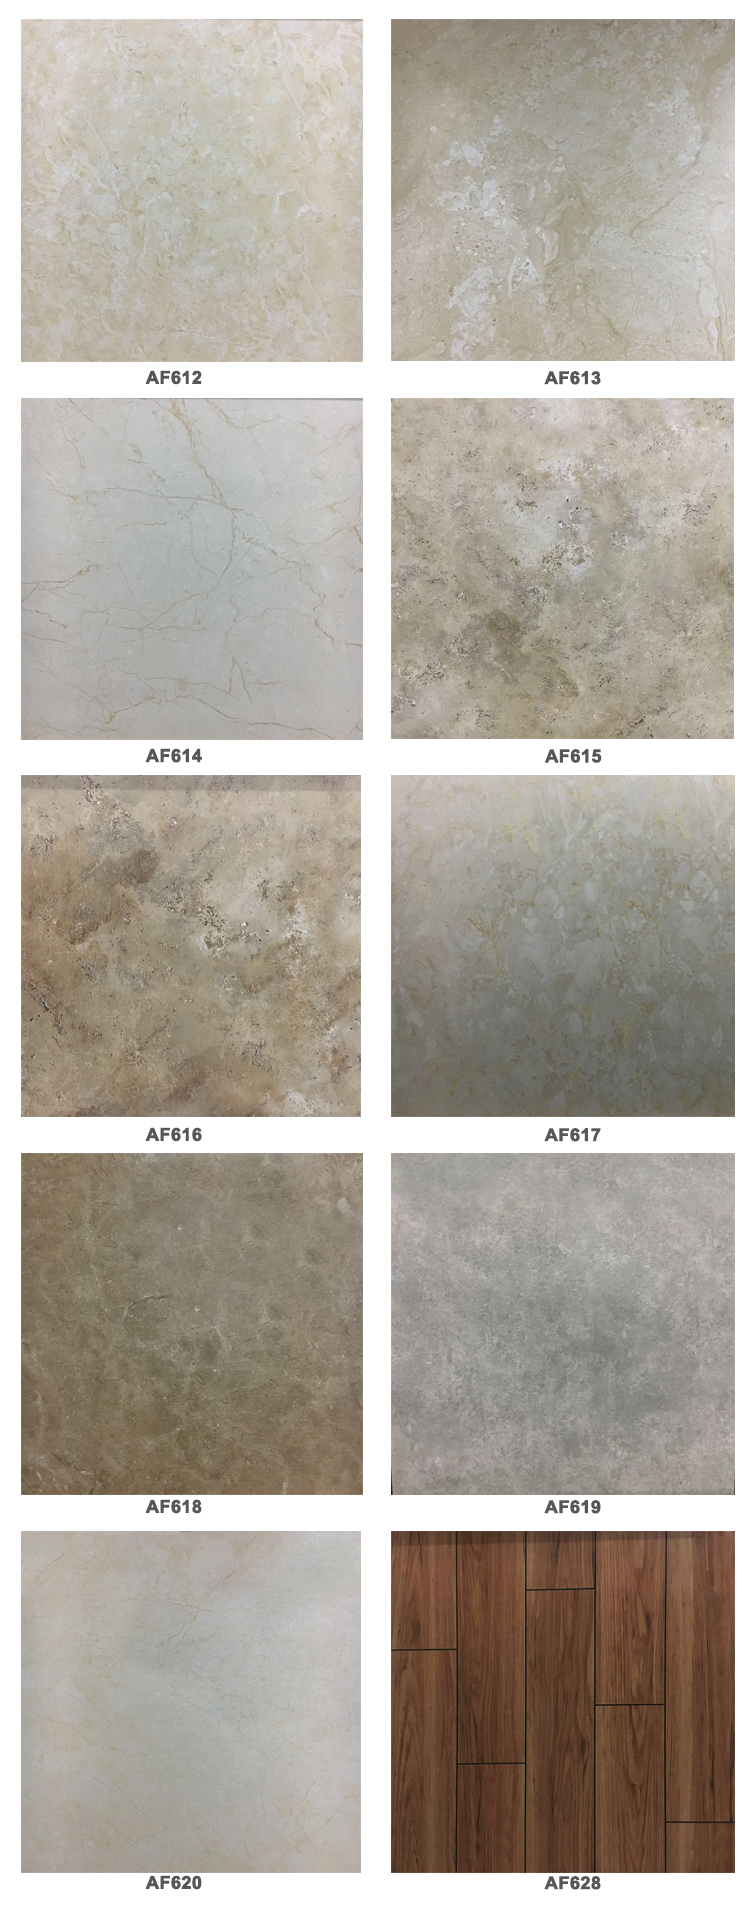 China factory wholesale 600x600 rustic tile floor with wood grain china factory wholesale 600x600 rustic tile floor with wood grain bangladesh price dailygadgetfo Choice Image